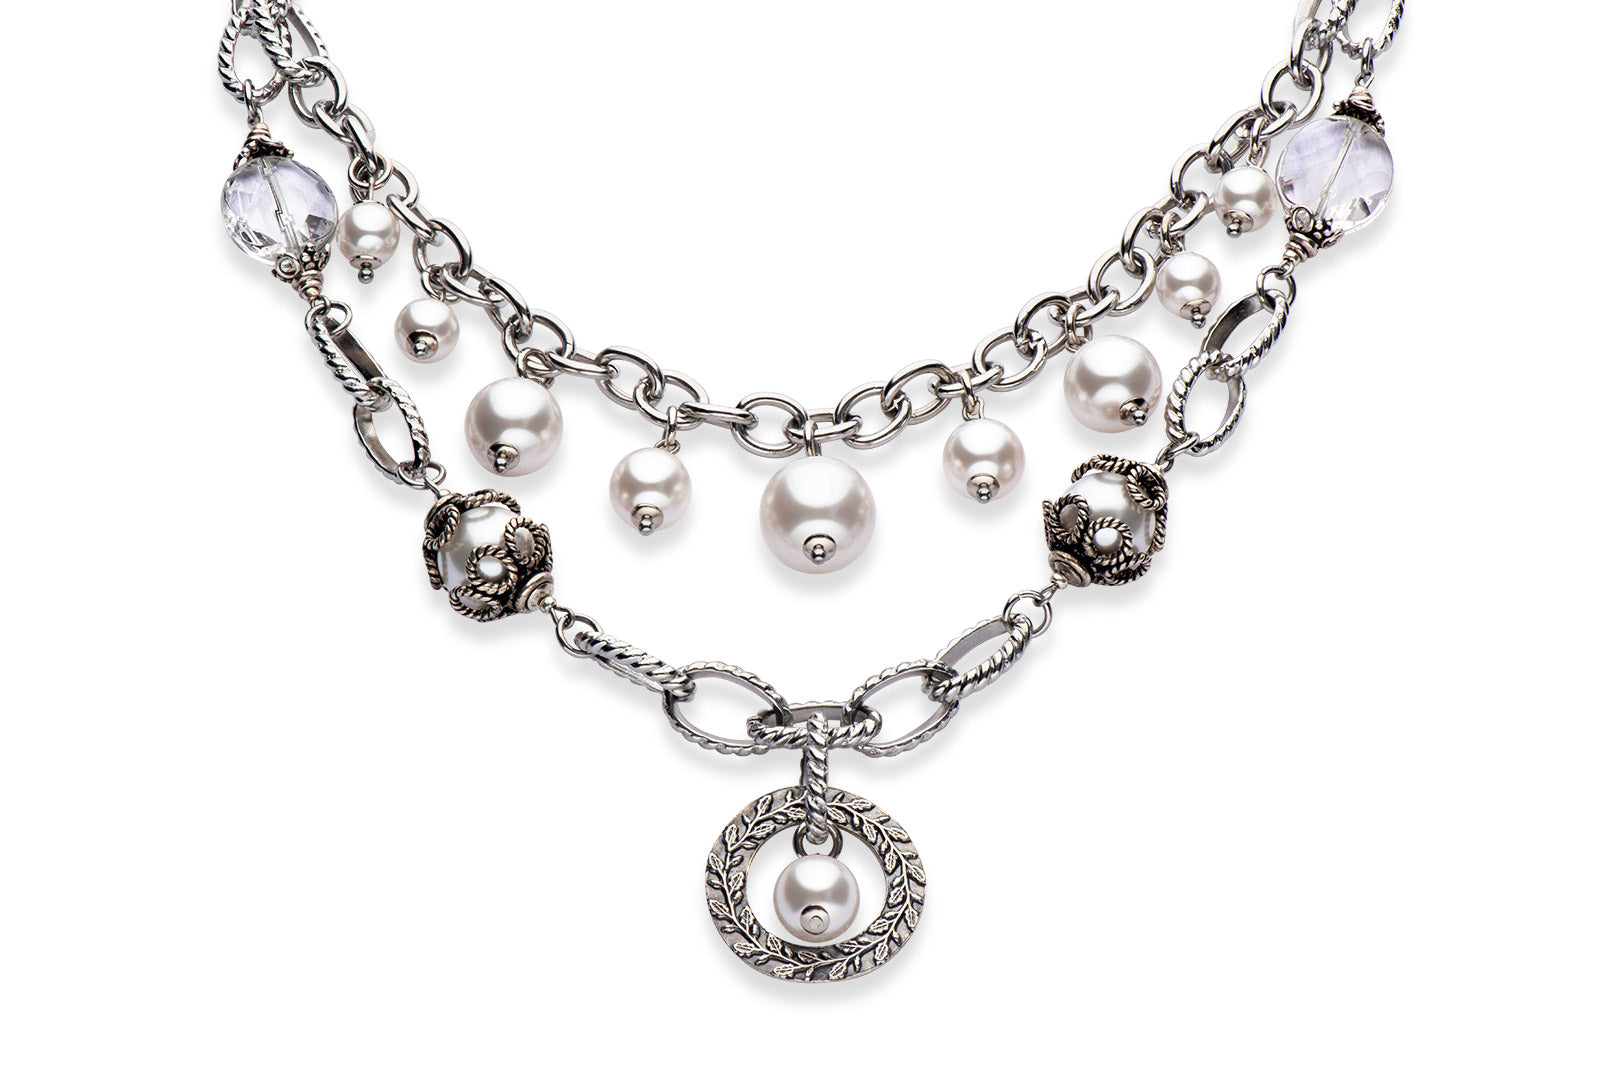 Pearl and sterling silver necklace